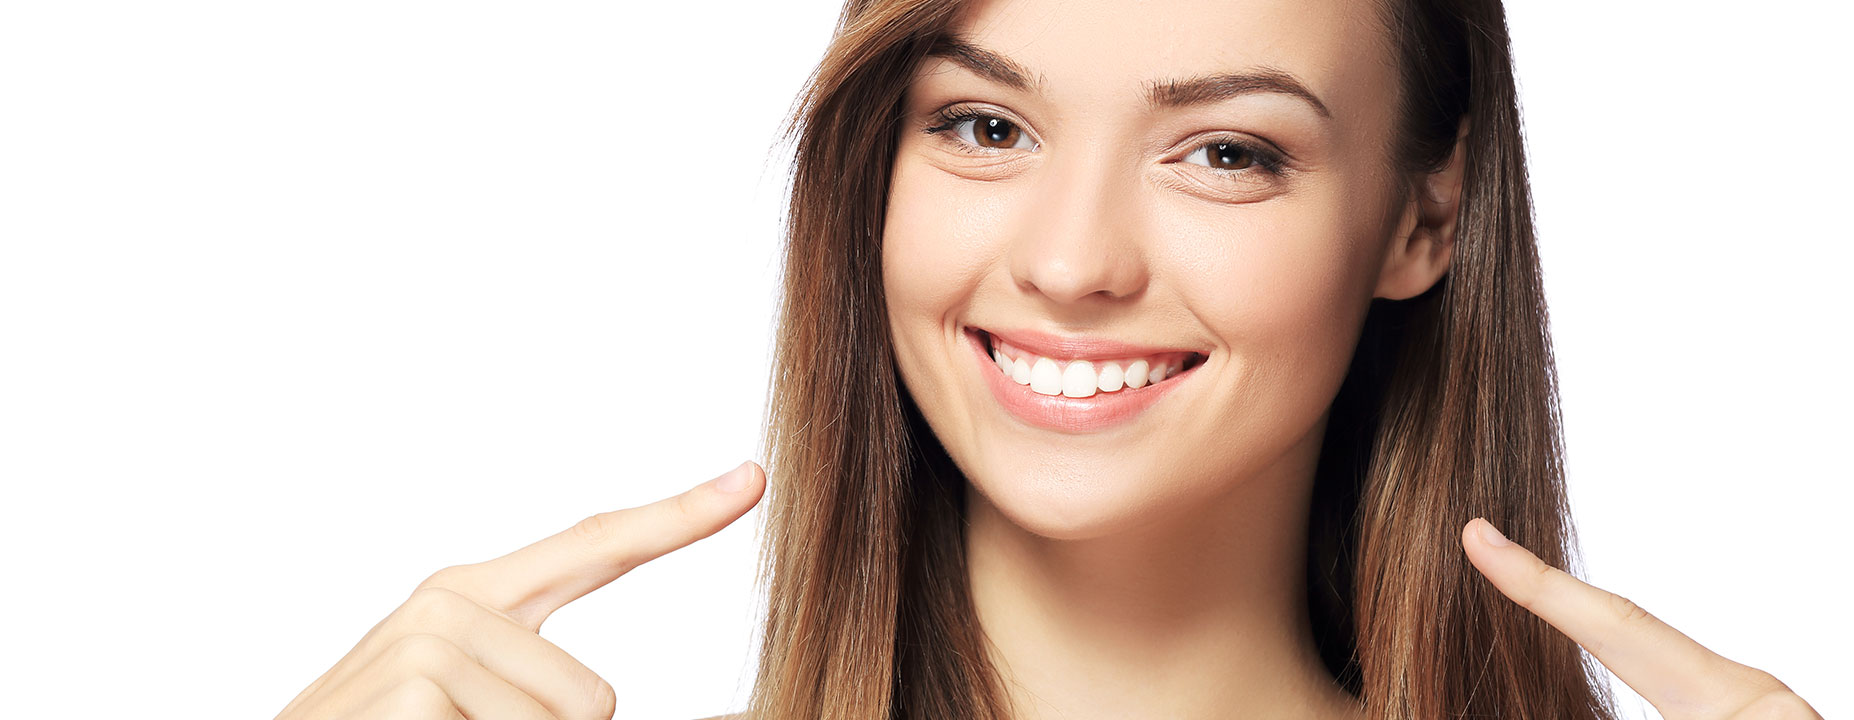 Young lady showing her healthy teeth